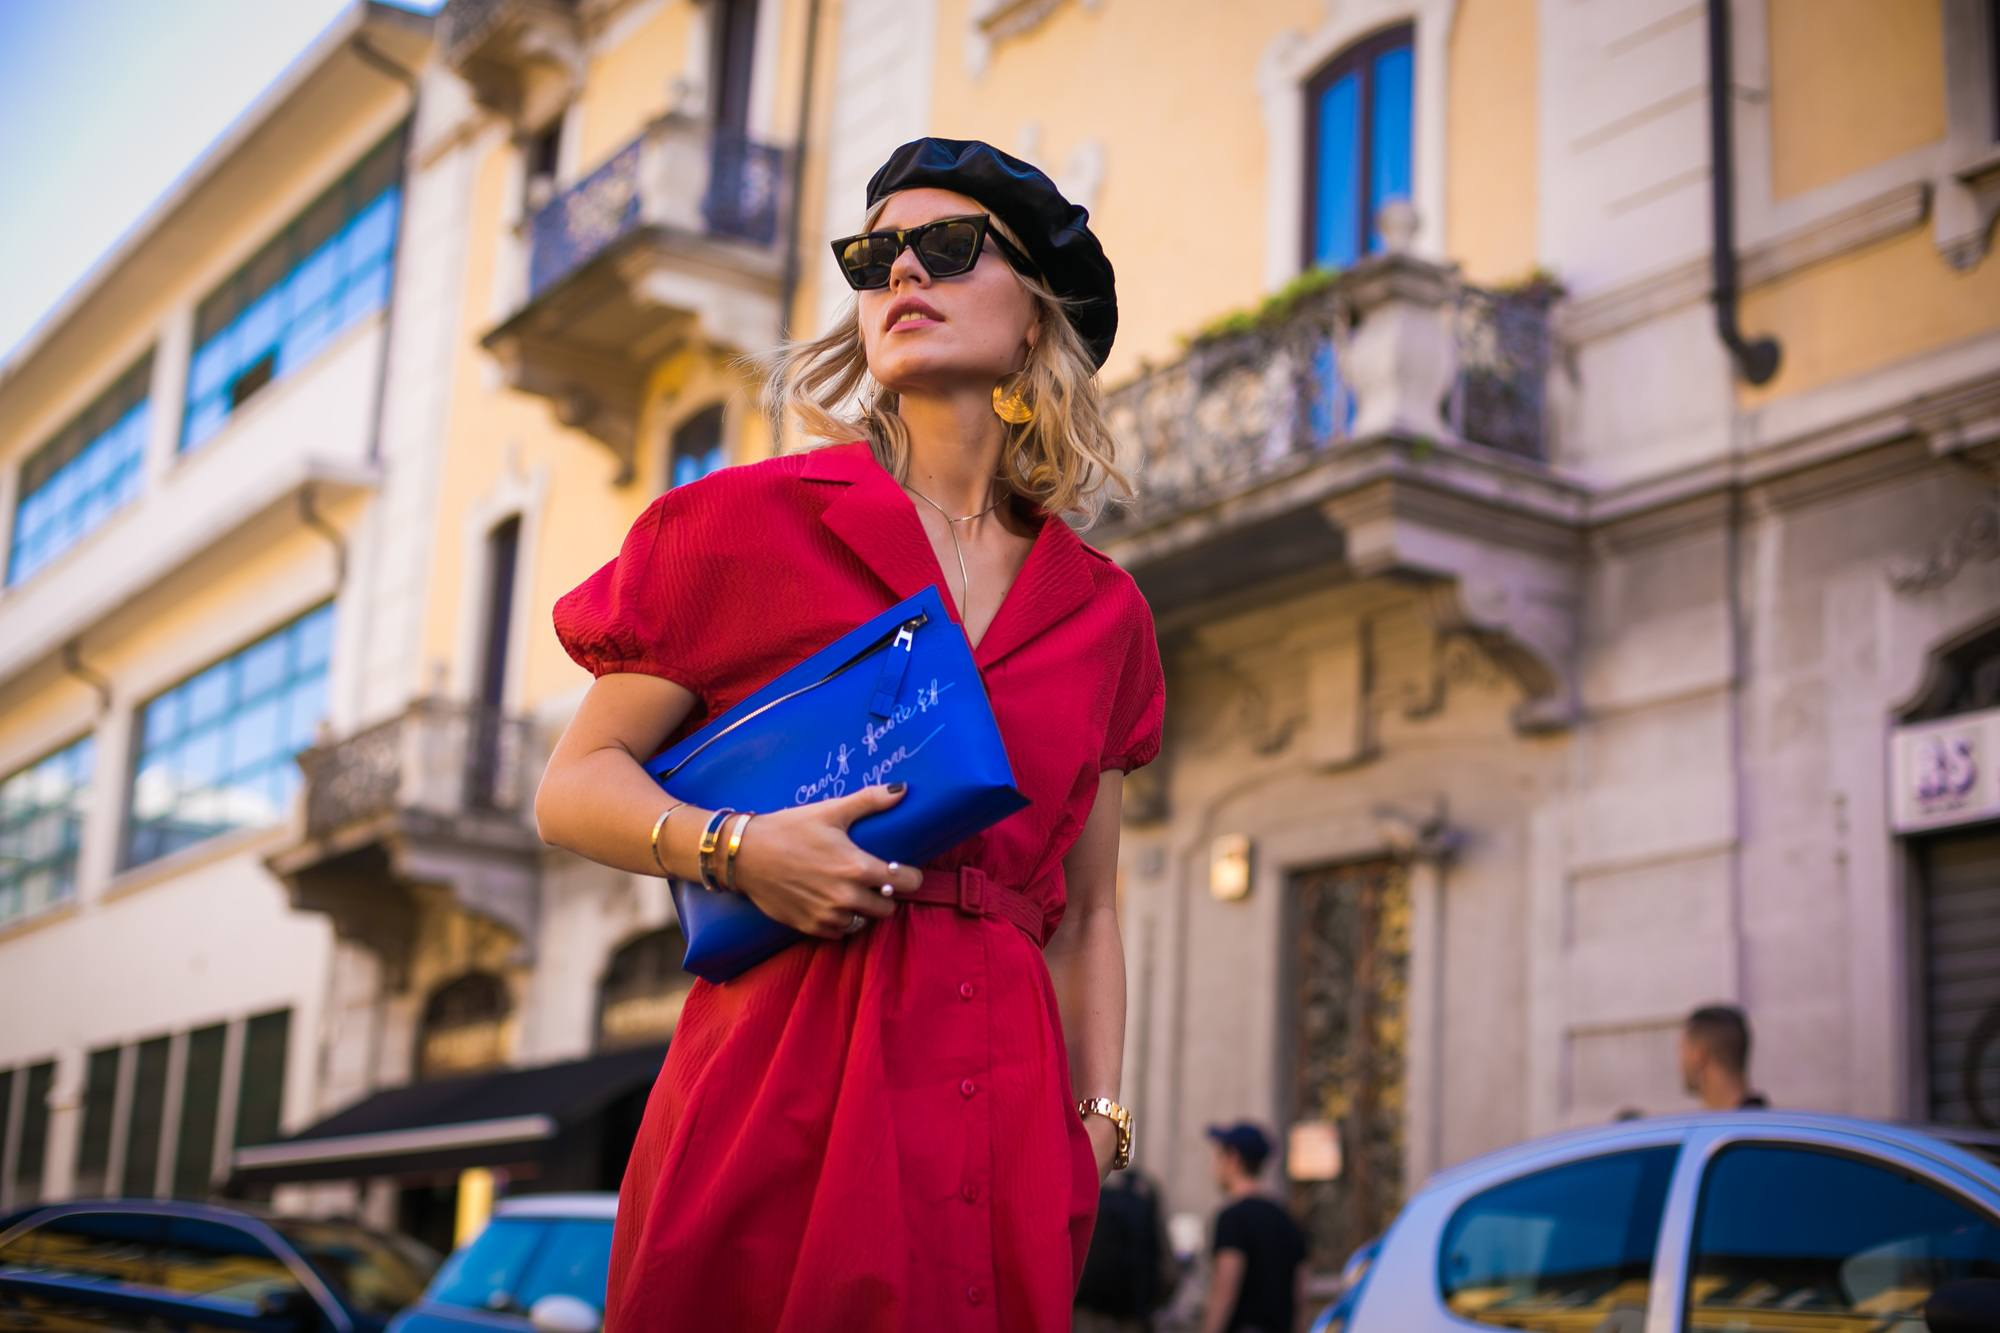 Milan Fashion Week Street Style FW19: Woman with short blonde shoulder length hair wearing a black beret, sunglasses and a red dress